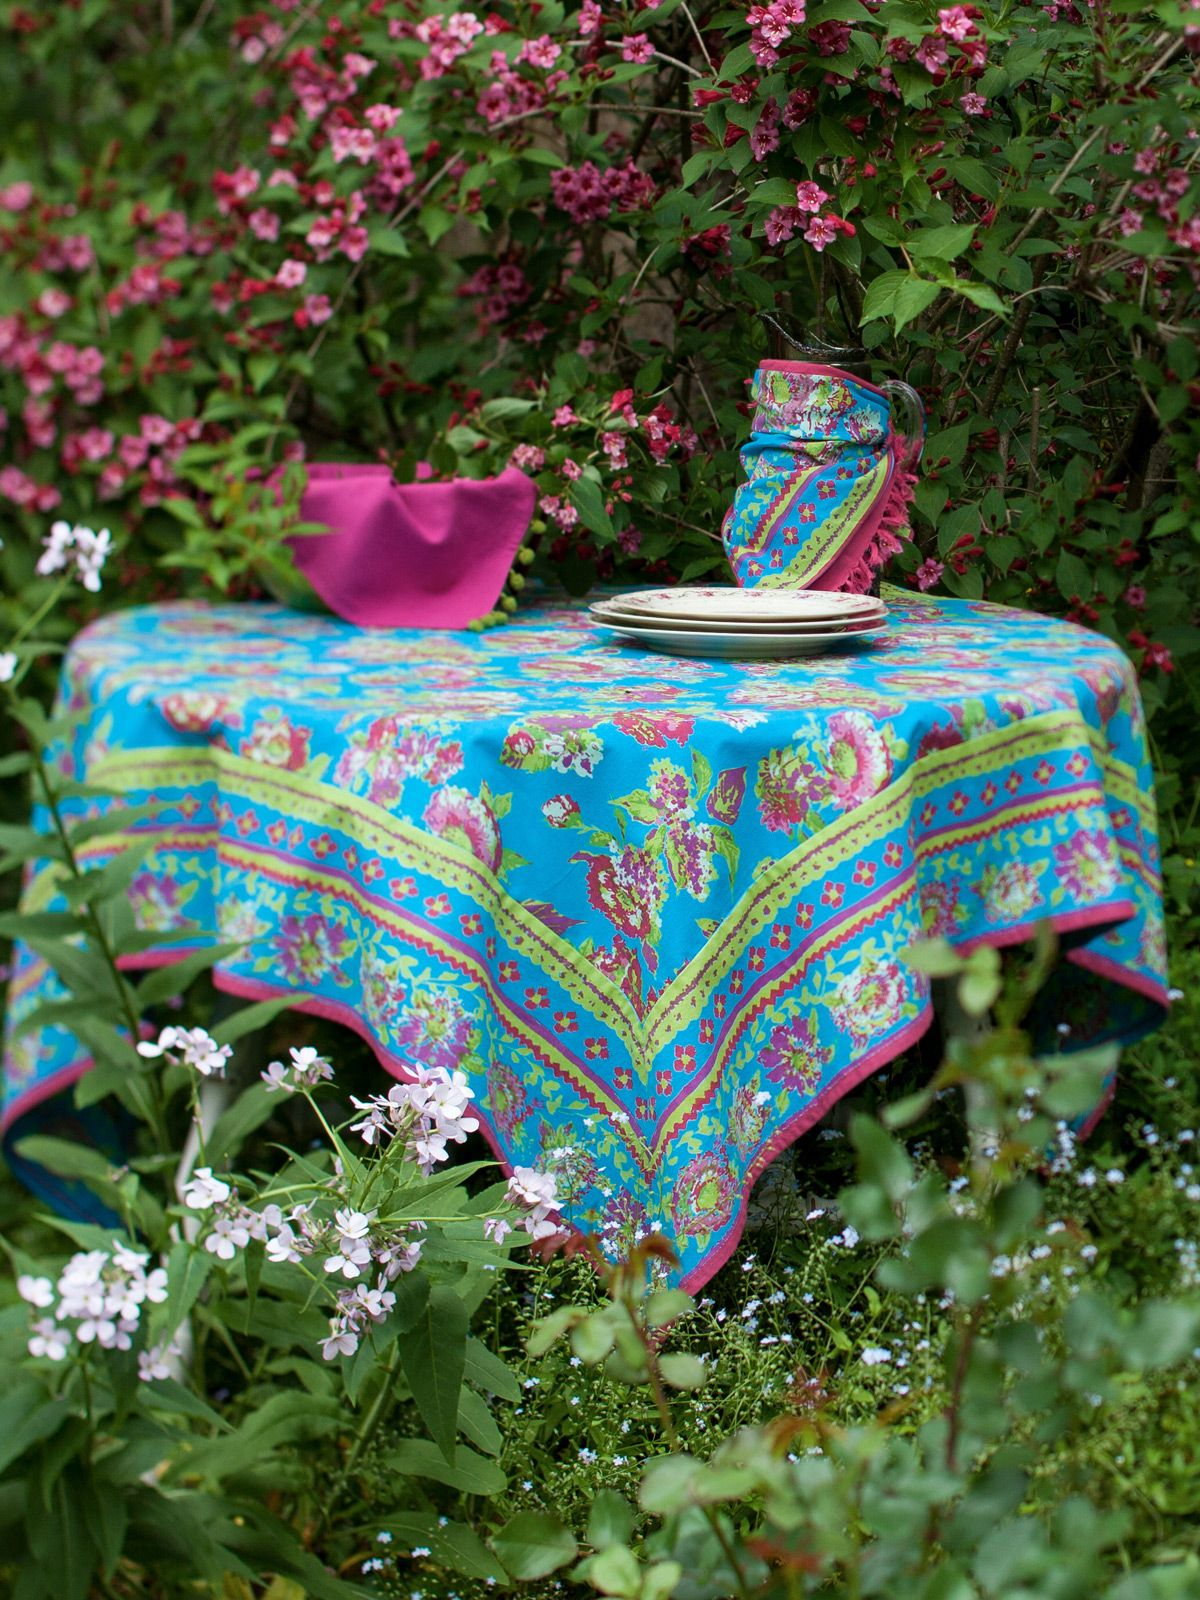 April Cornell Tablecloths U0026 Table Linens, Unique Designs For Home U0026  Kitchen. Inspired By Nature, April Cornell Offers Color U0026 Superior Quality.